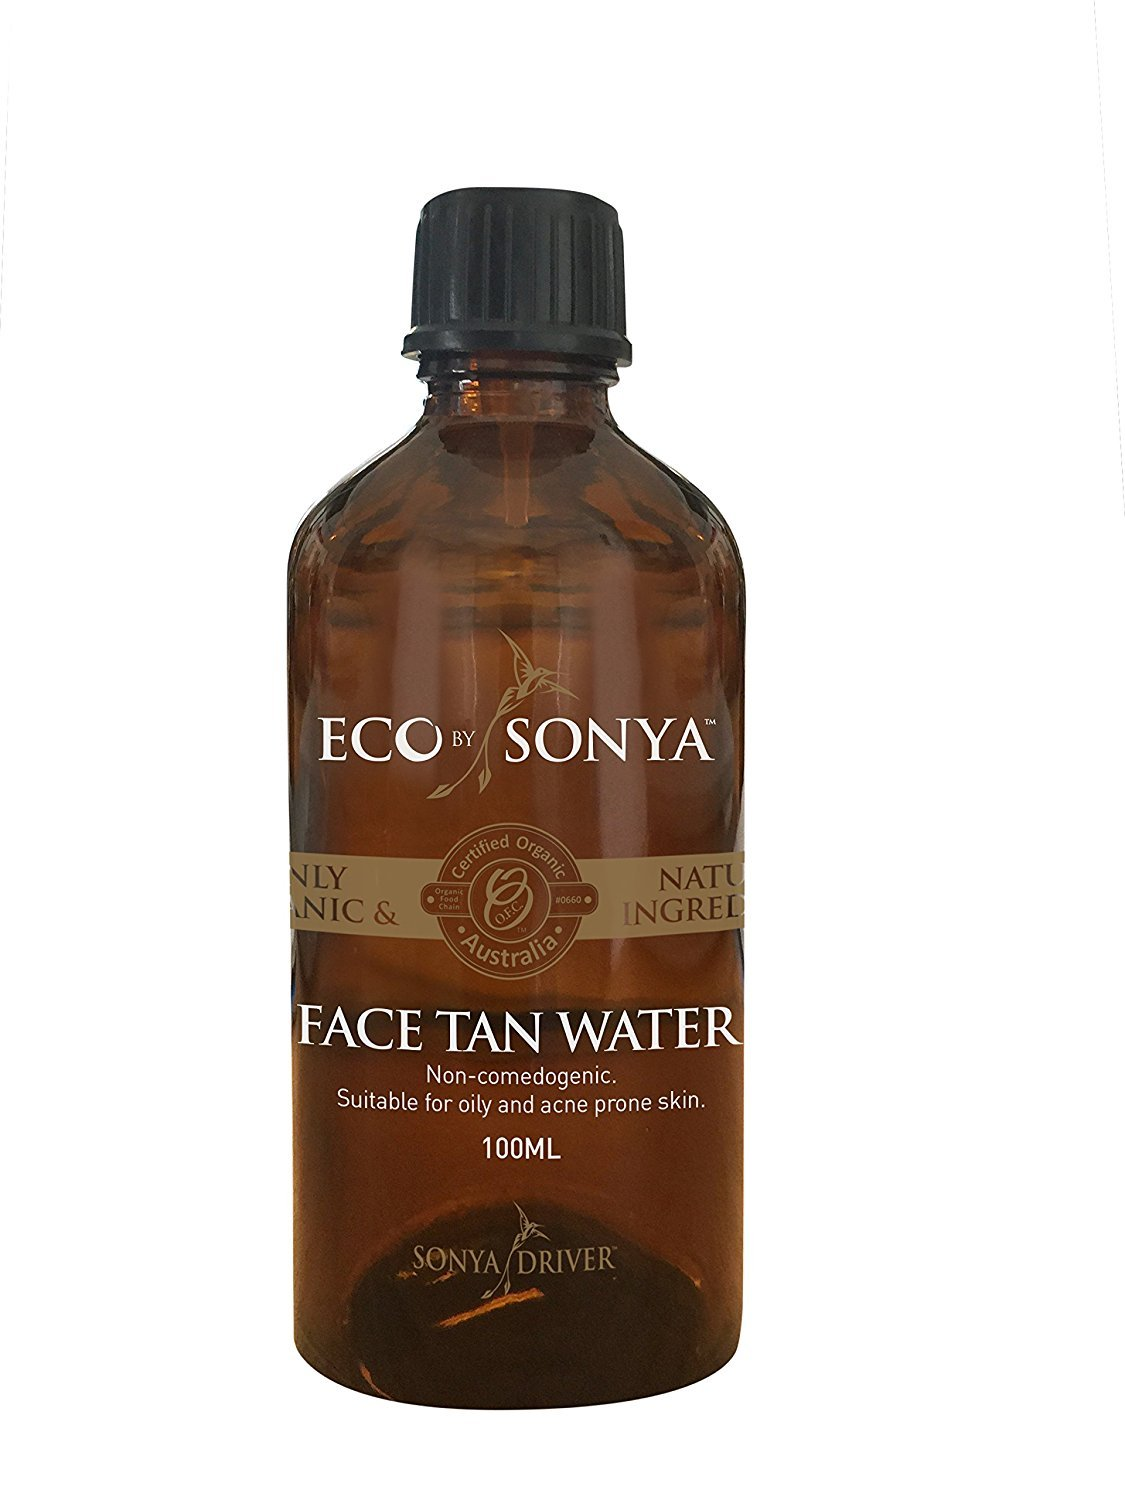 Eco by Sonya Eco Tan, Organic Face Tan Water Suitable for Oily & Acne-Prone Skin, 3.381 FL. OZ (100 ML) Ecotan Face Tan Water